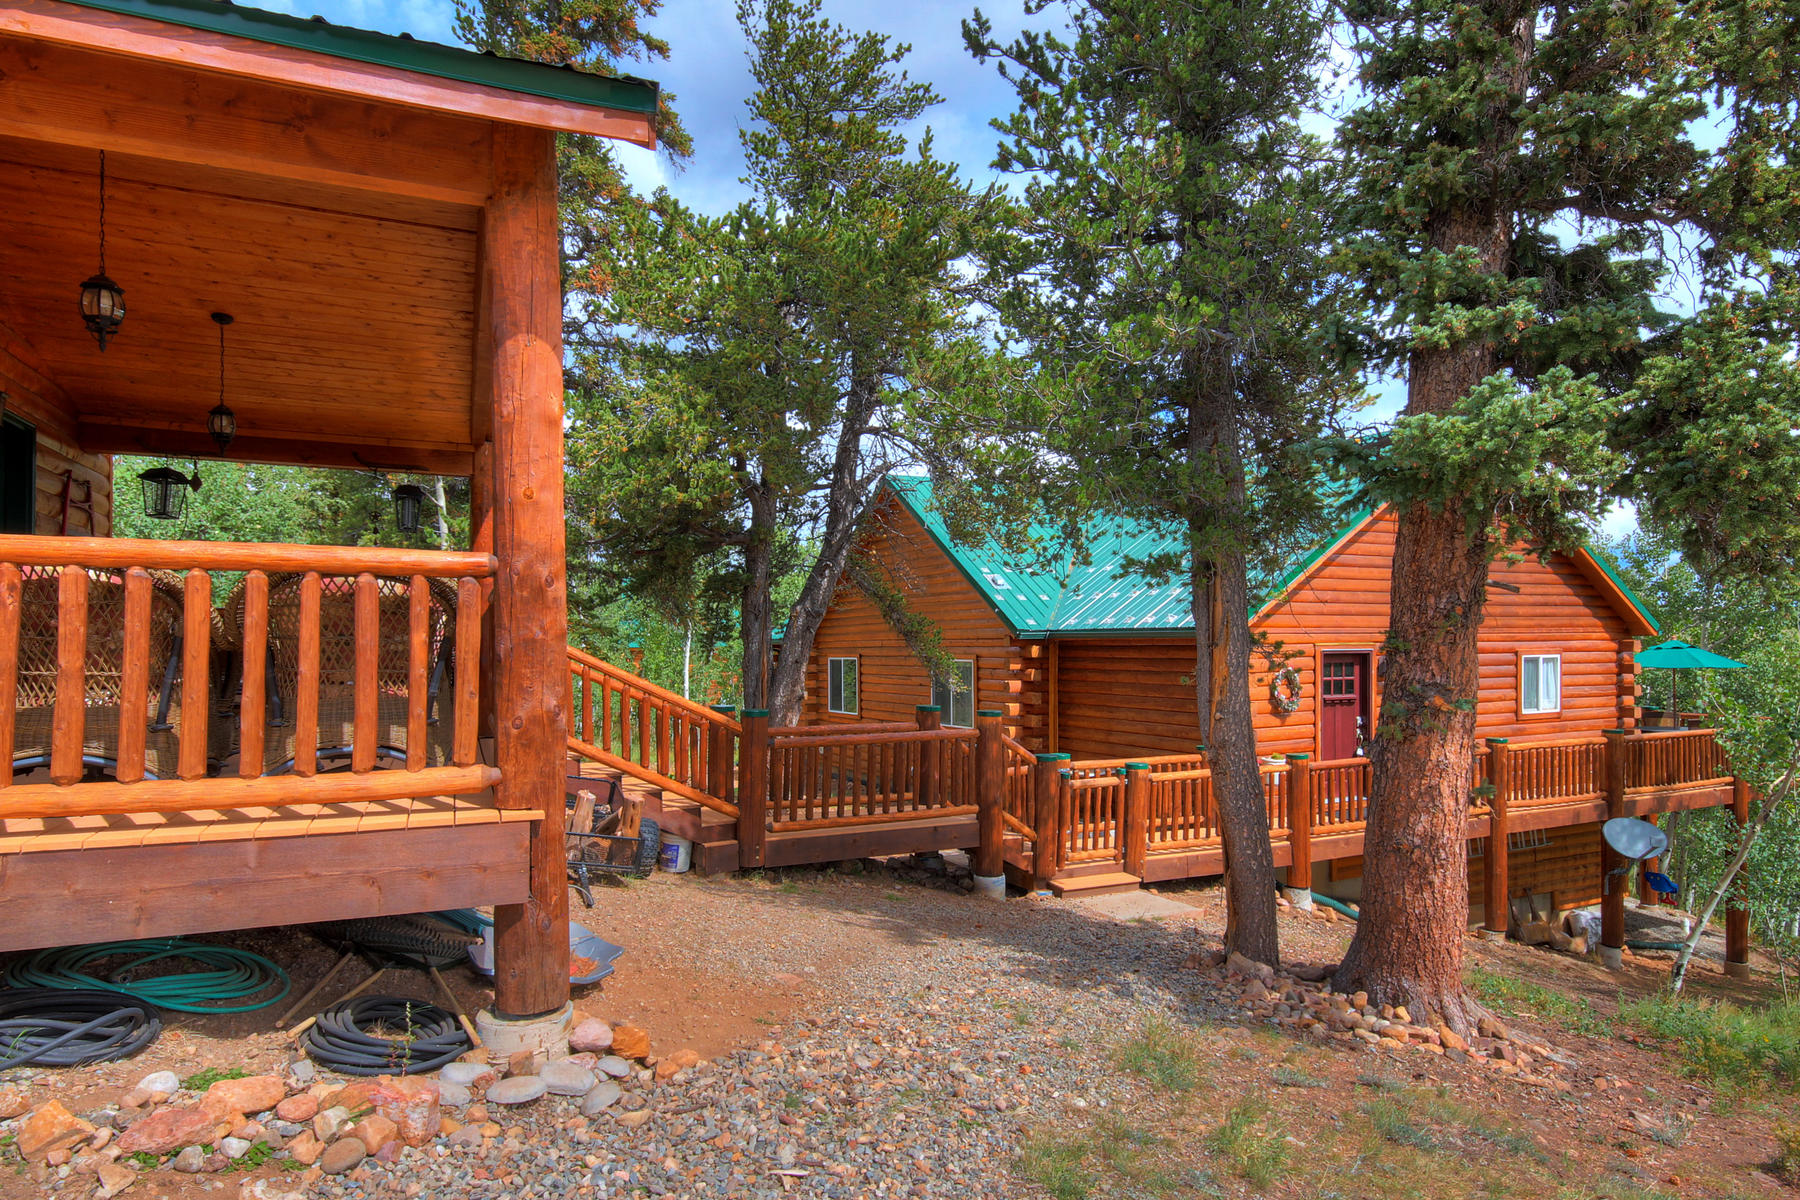 Single Family Home for Active at Warm Springs Ranch Home 95 Lamb Mountain Road Fairplay, Colorado 80440 United States